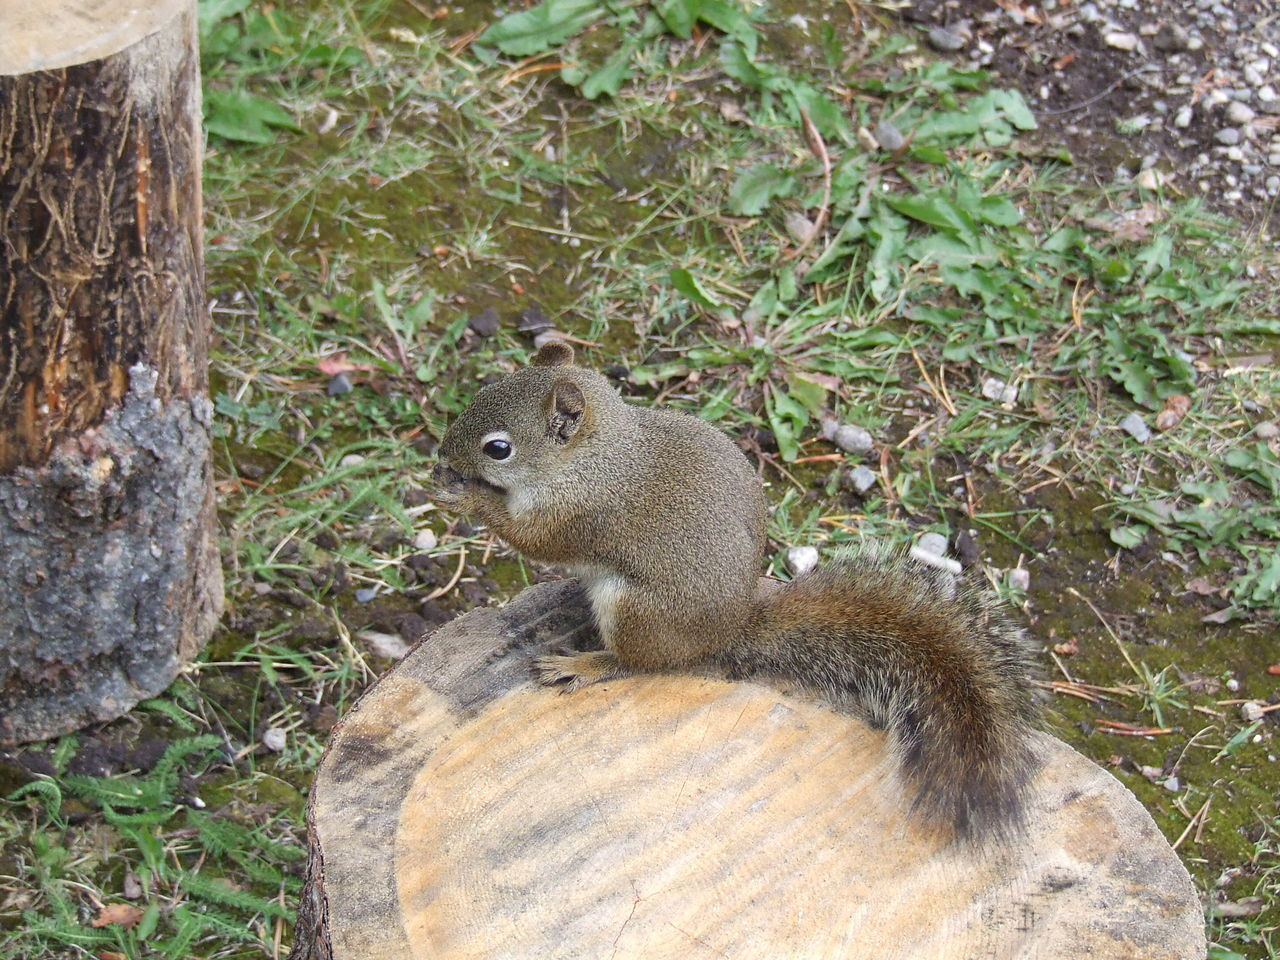 one animal, animals in the wild, squirrel, animal wildlife, nature, animal themes, mammal, day, outdoors, no people, eating, grass, close-up